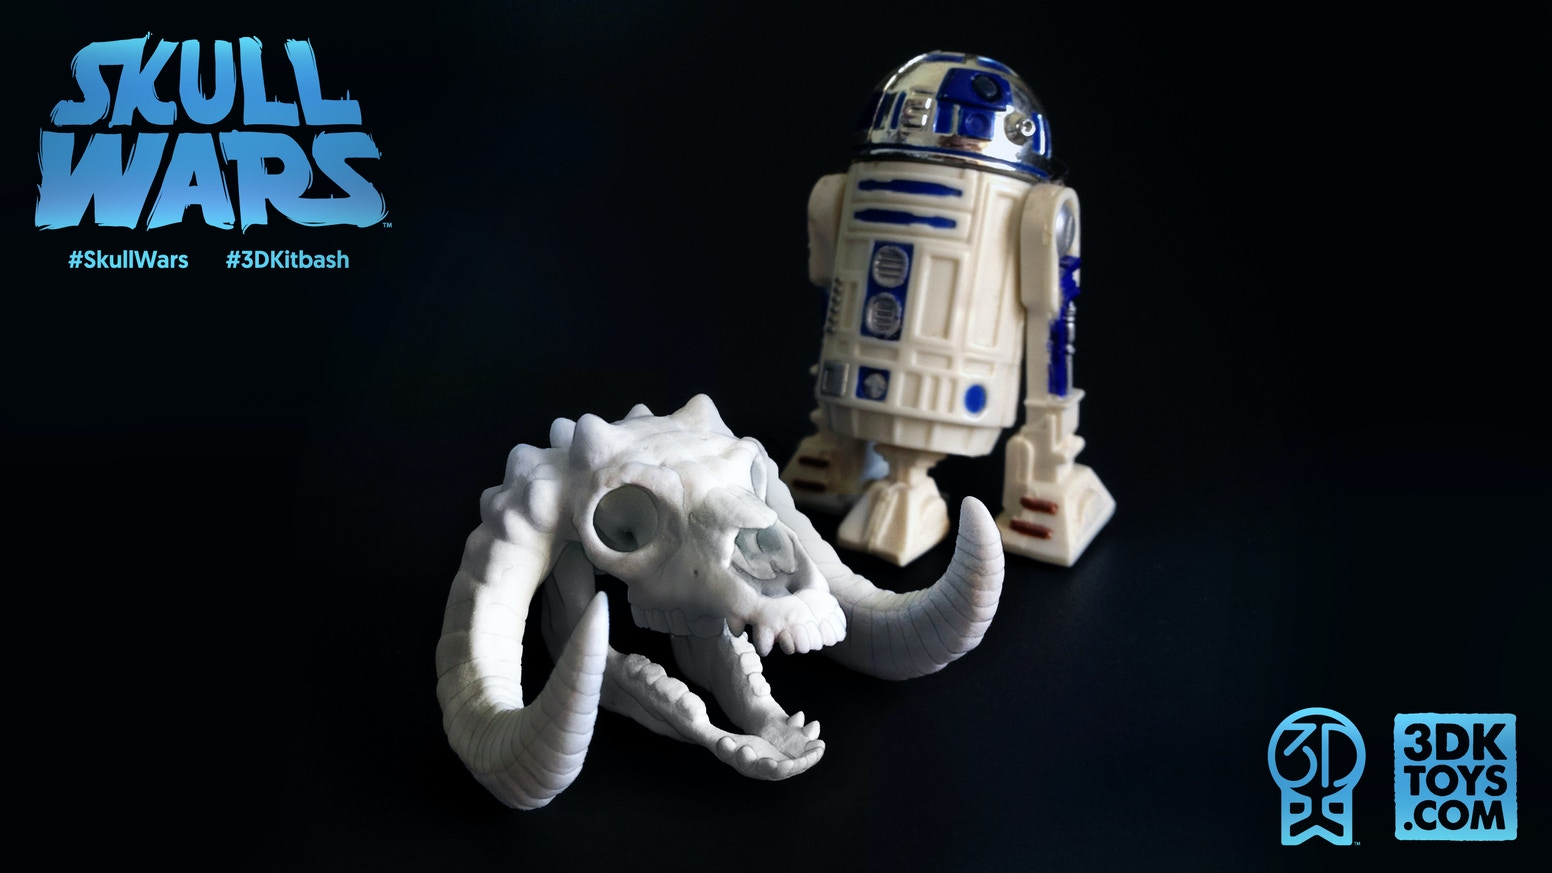 A collection of 15 parody skulls inspired by the creatures and characters of Star Wars. Nylon skulls & 3D-printable files available.